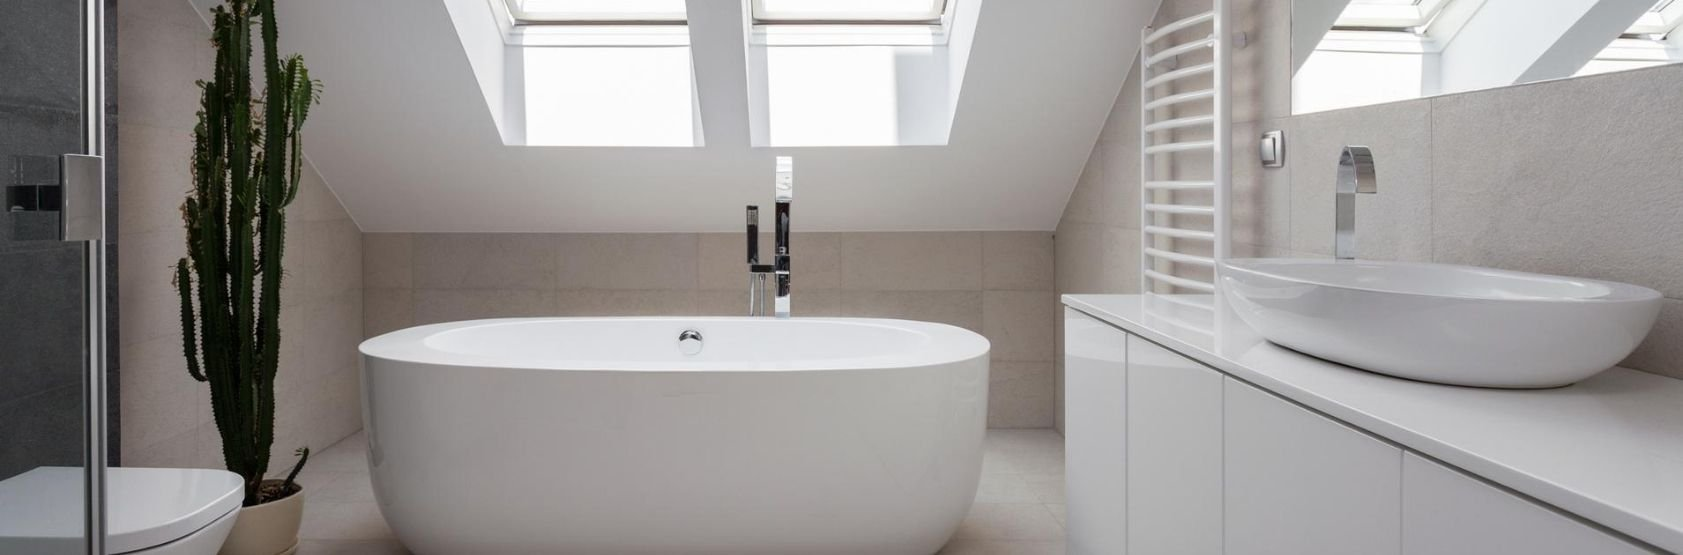 Bathroom-Fitting-Services-Dorset-Hampshire_12